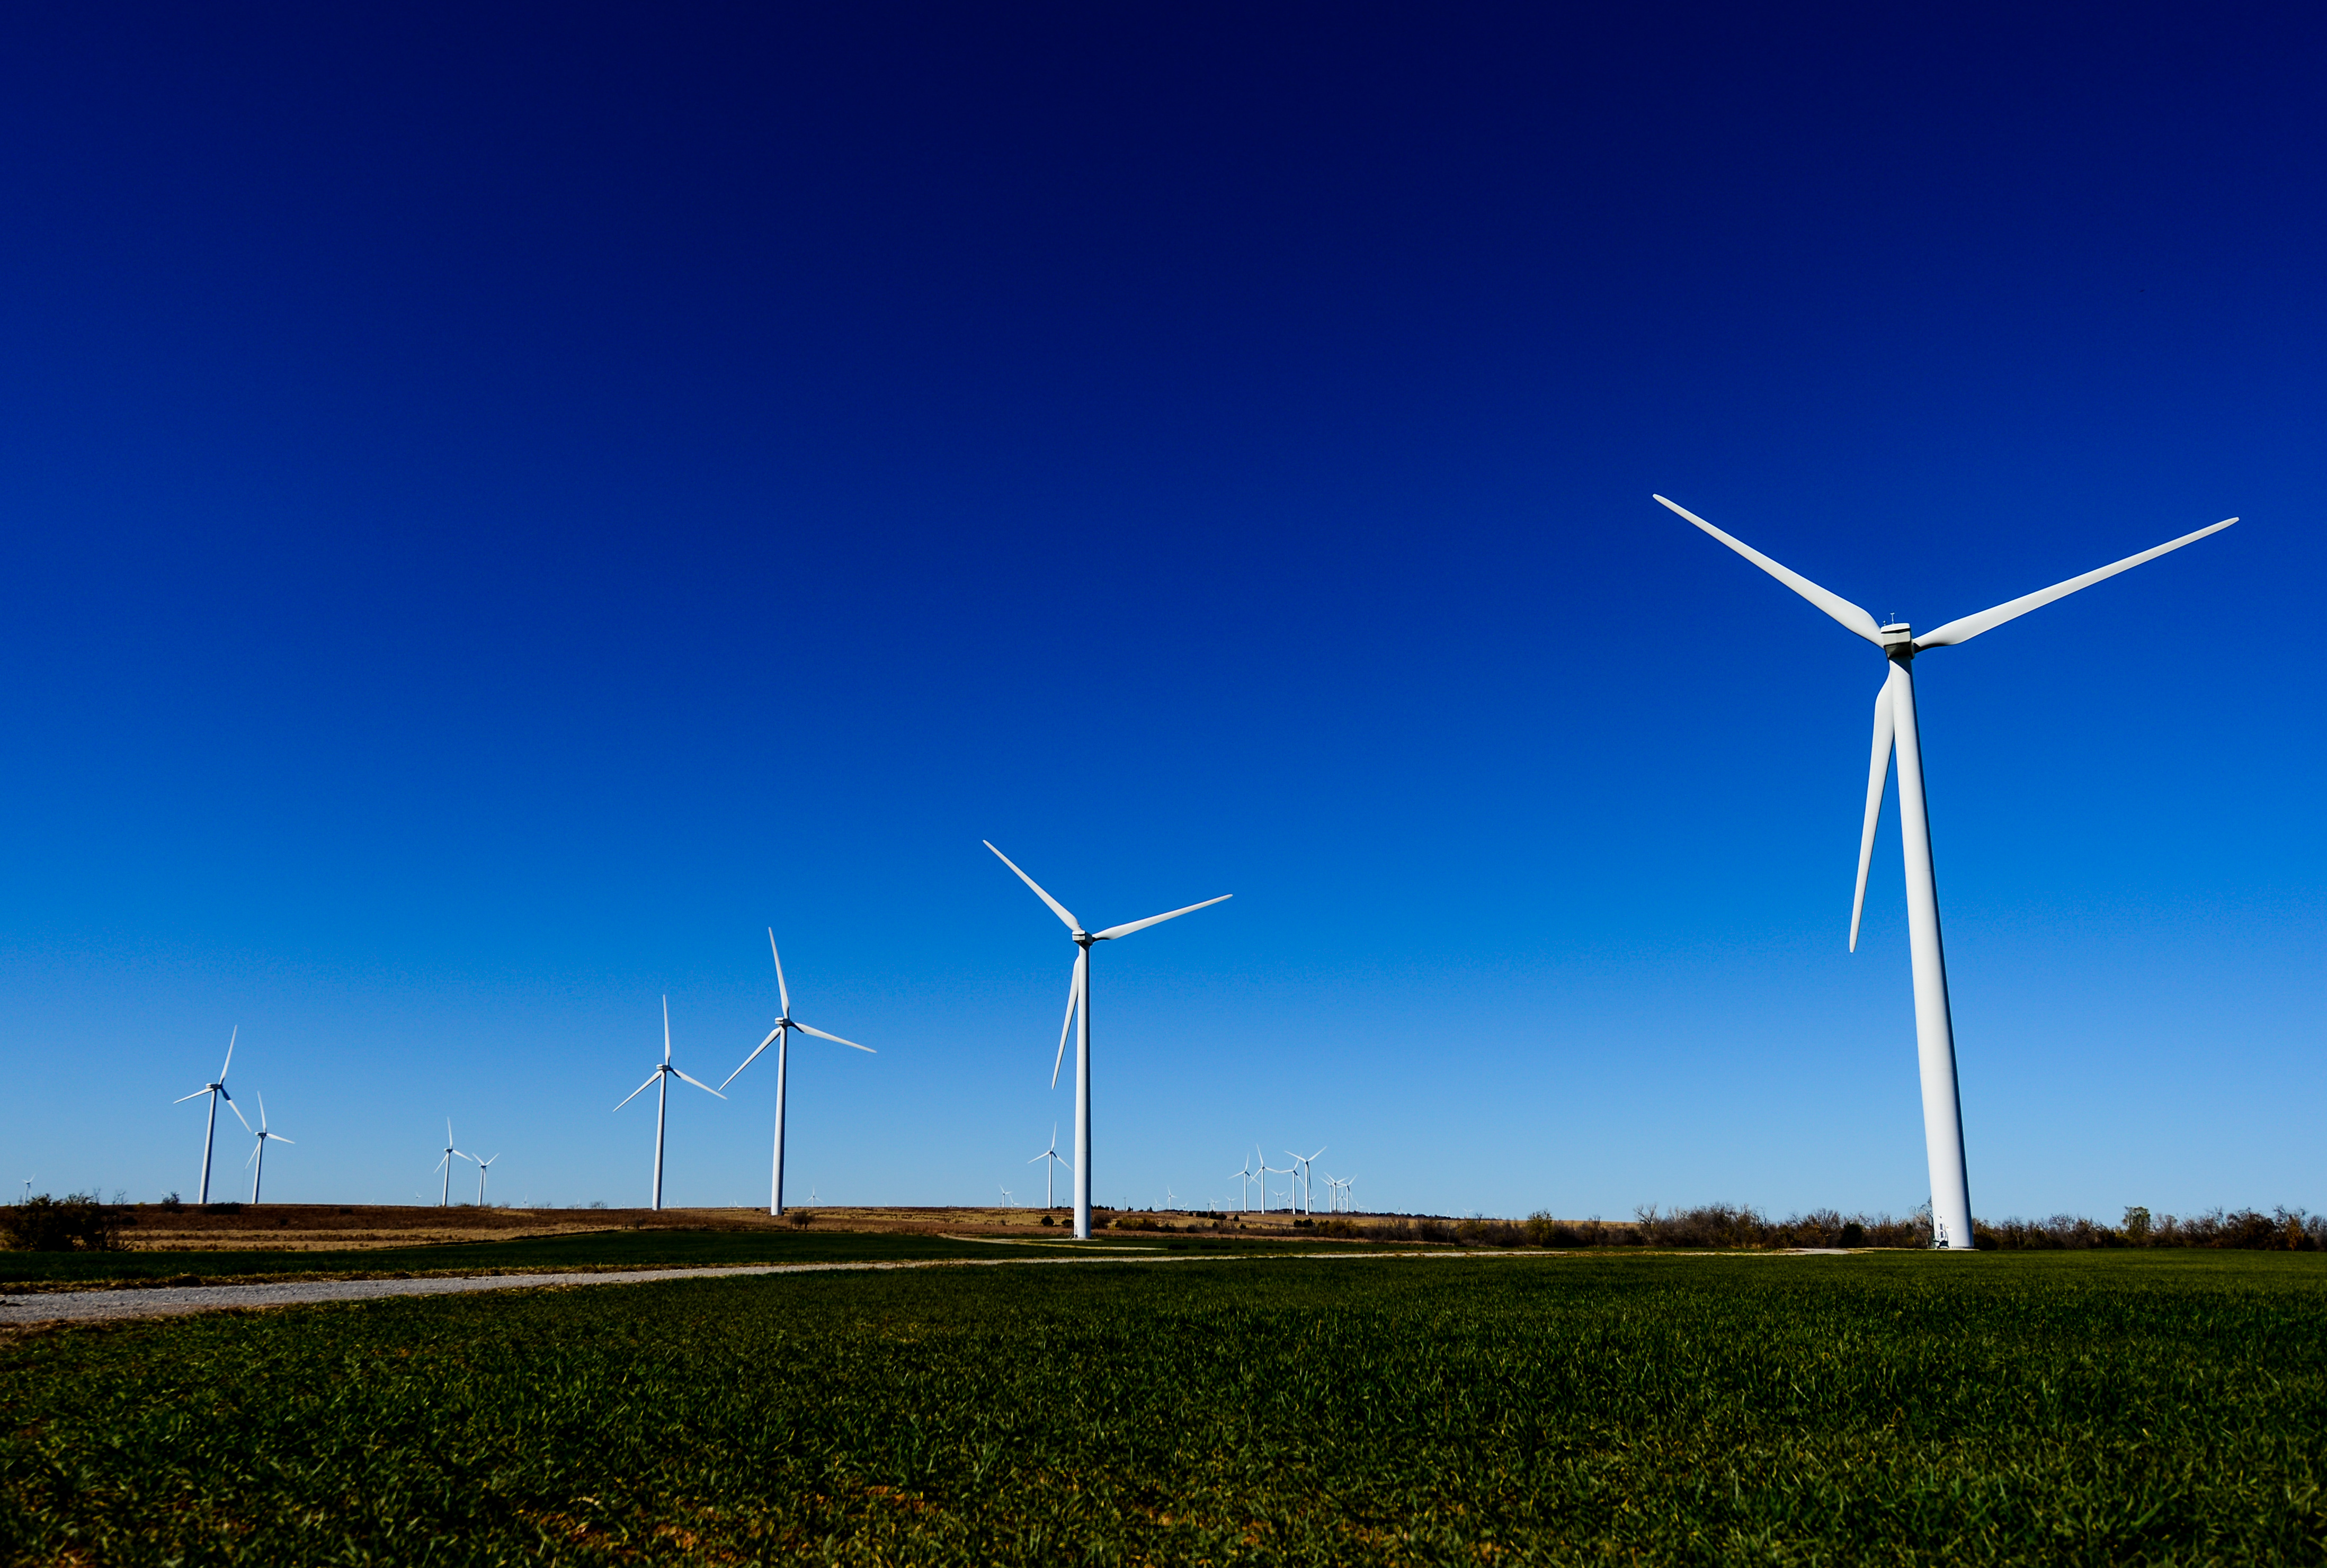 Google buys renewable energy from 20 wind and solar projects around the world.